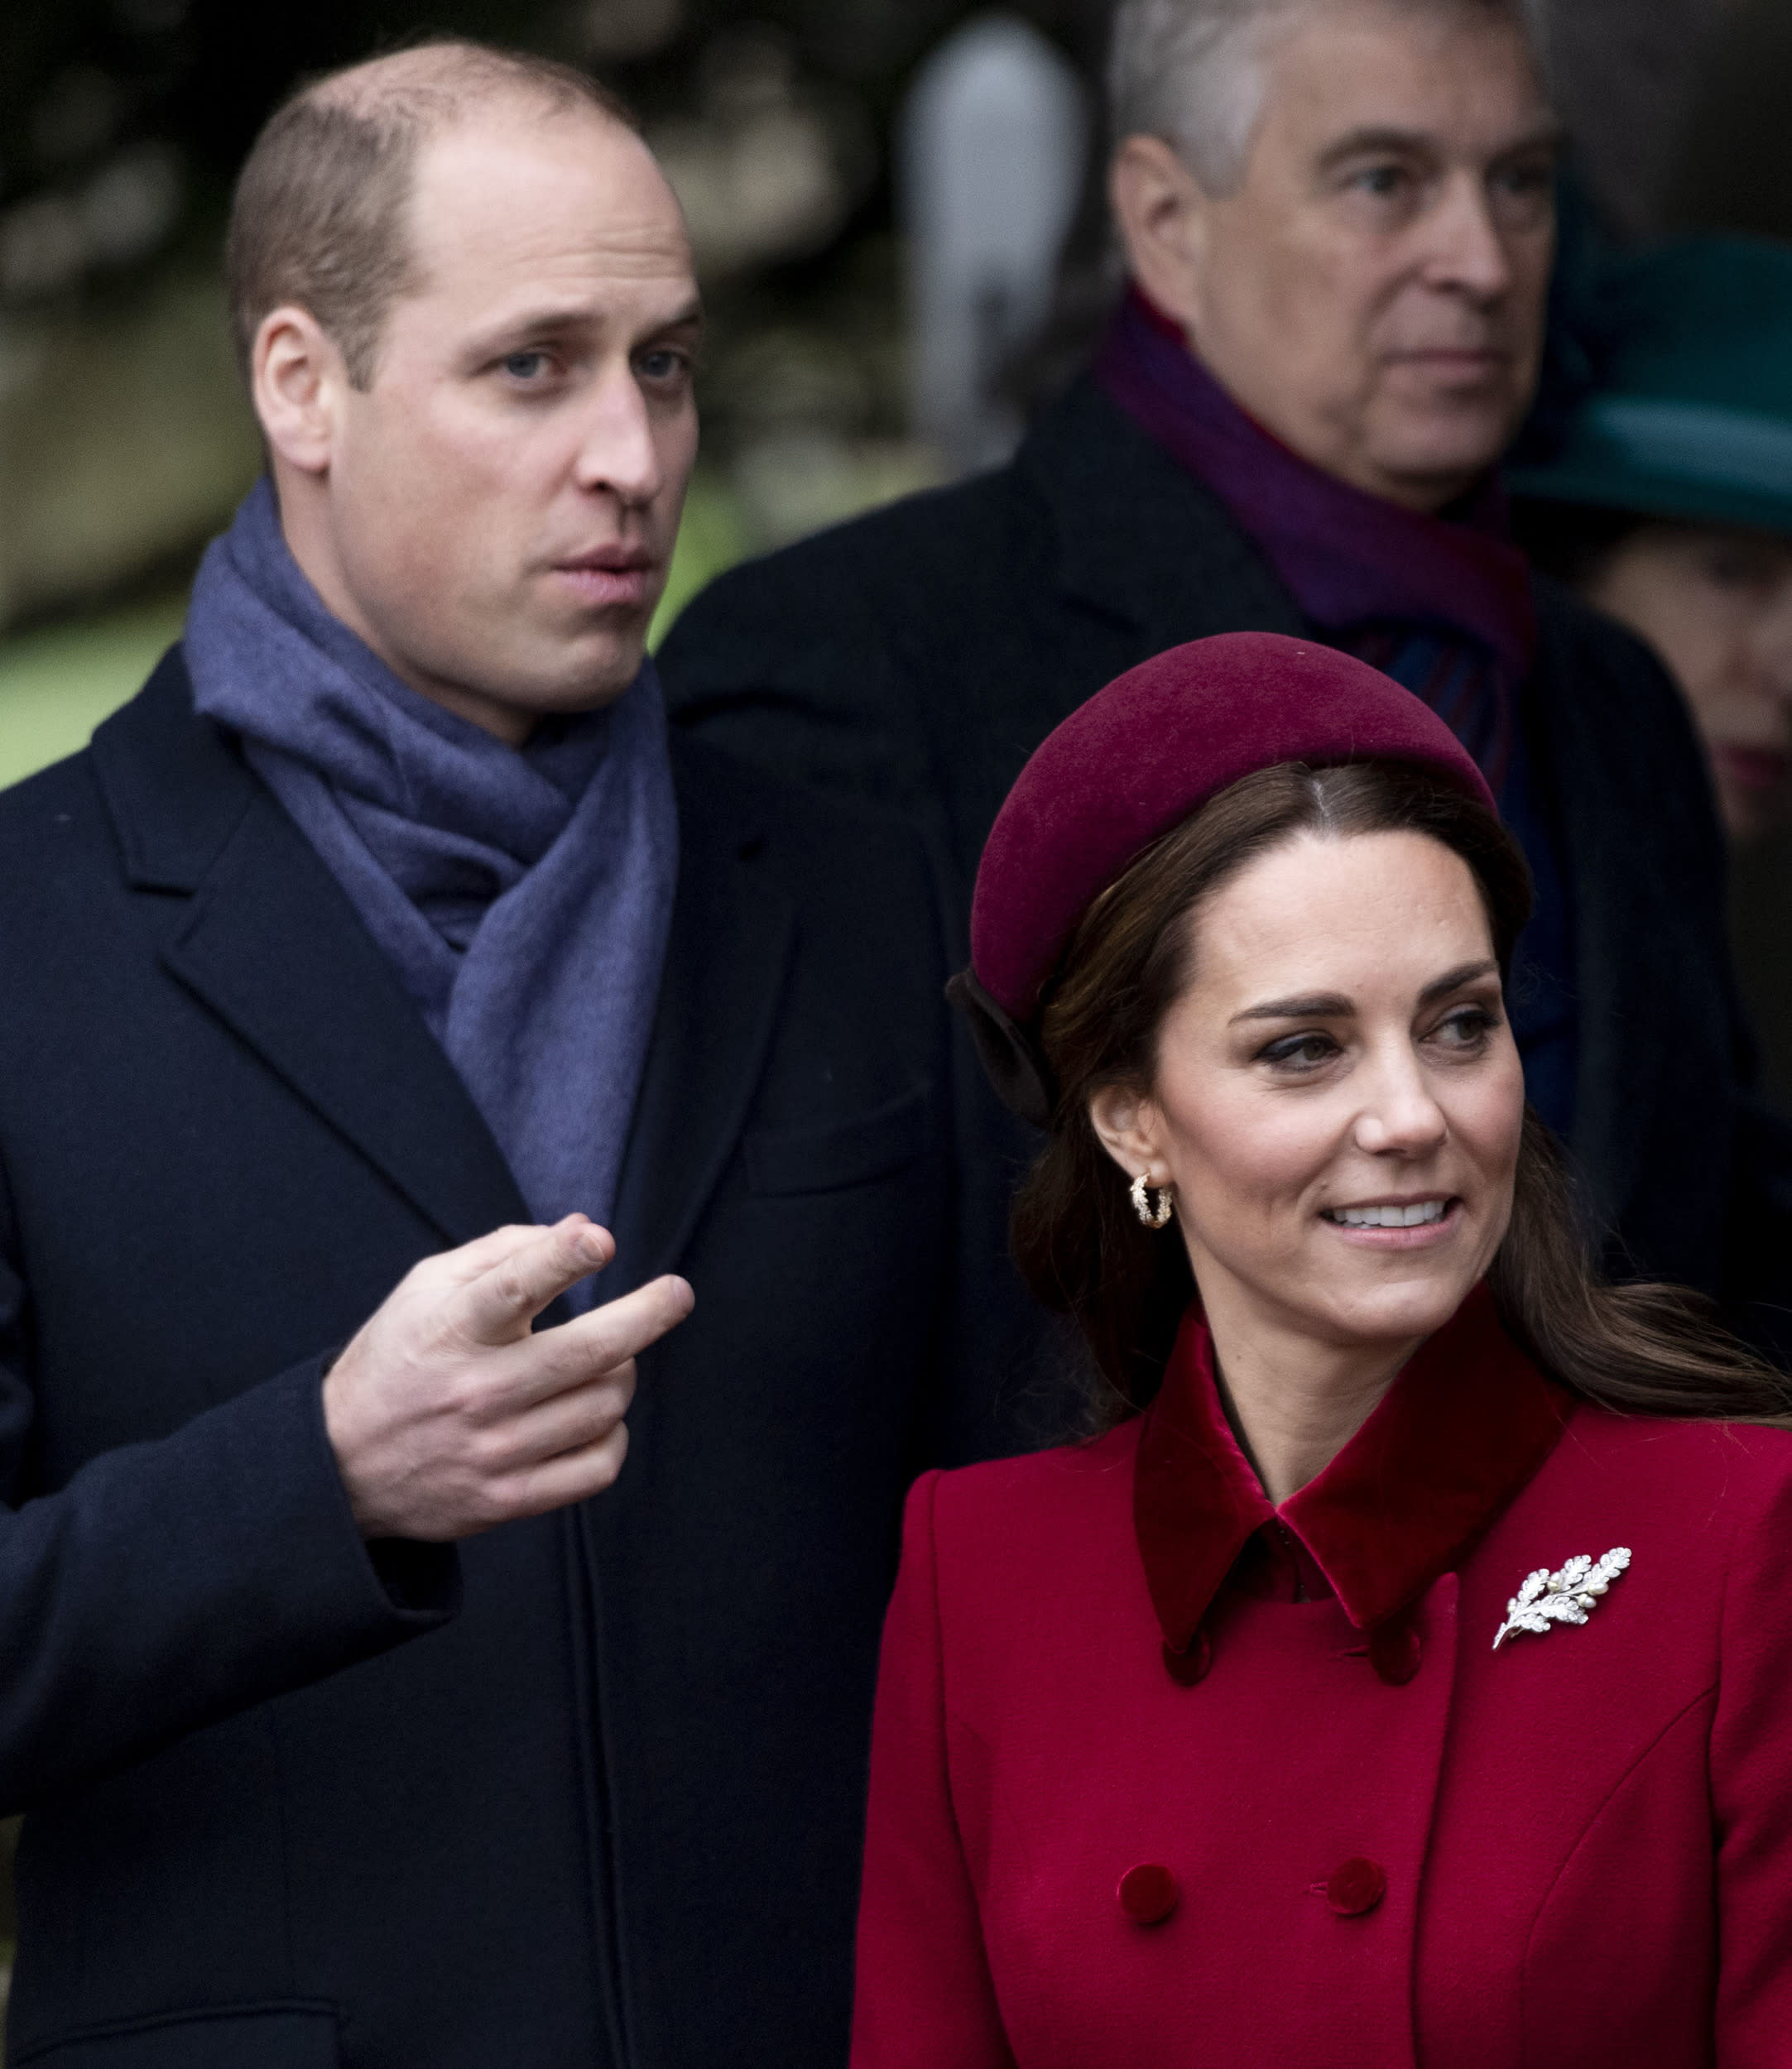 KING'S LYNN, ENGLAND - DECEMBER 25: Prince William, Duke of Cambridge and Catherine, Duchess of Cambridge attend Christmas Day Church service at Church of St Mary Magdalene on the Sandringham estate on December 25, 2018 in King's Lynn, England. (Photo by Mark Cuthbert/UK Press via Getty Images)